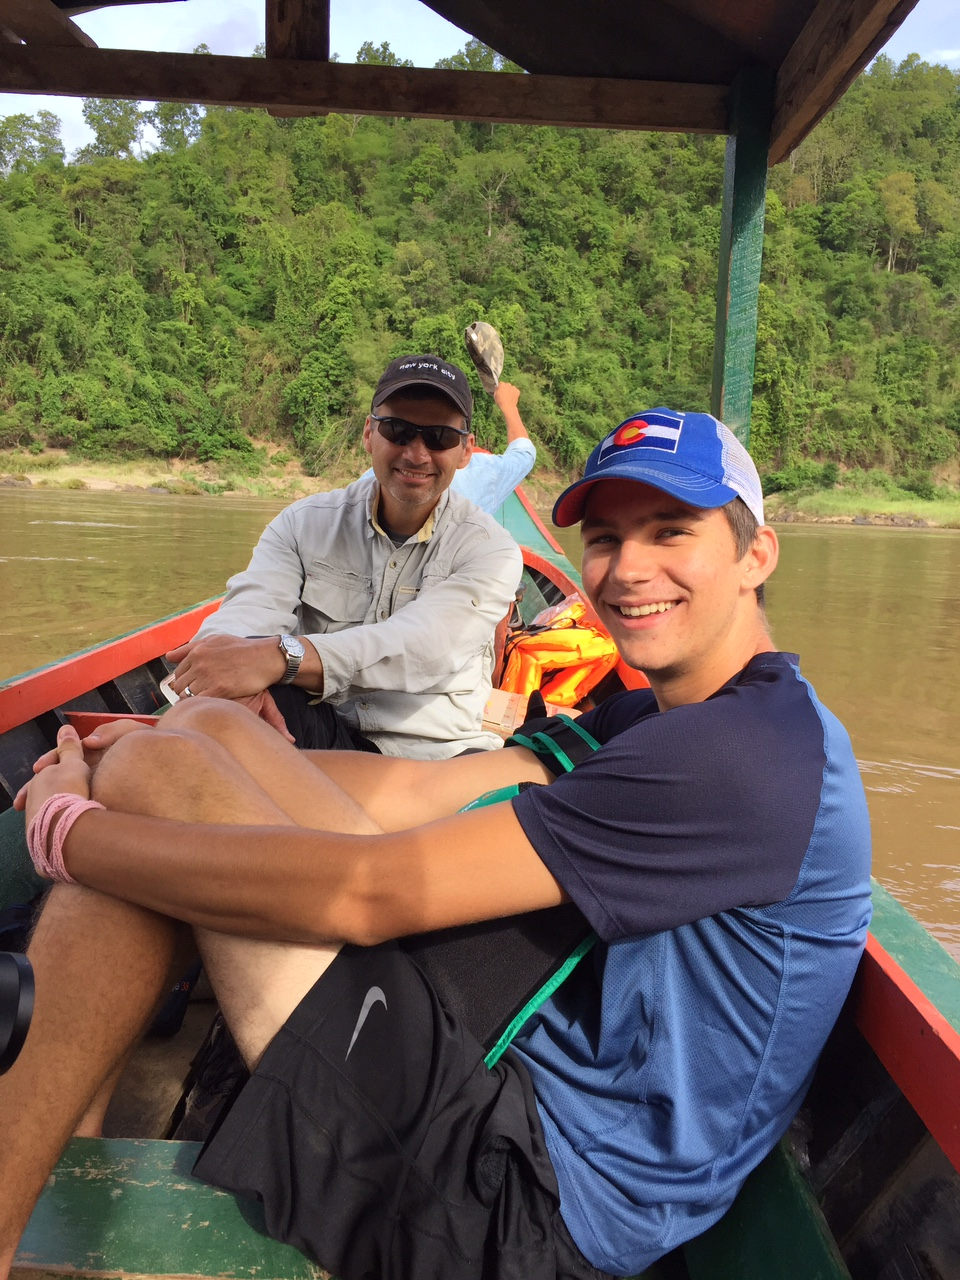 Todd and Zach traveling to visit the new location in Burma during peaceful times